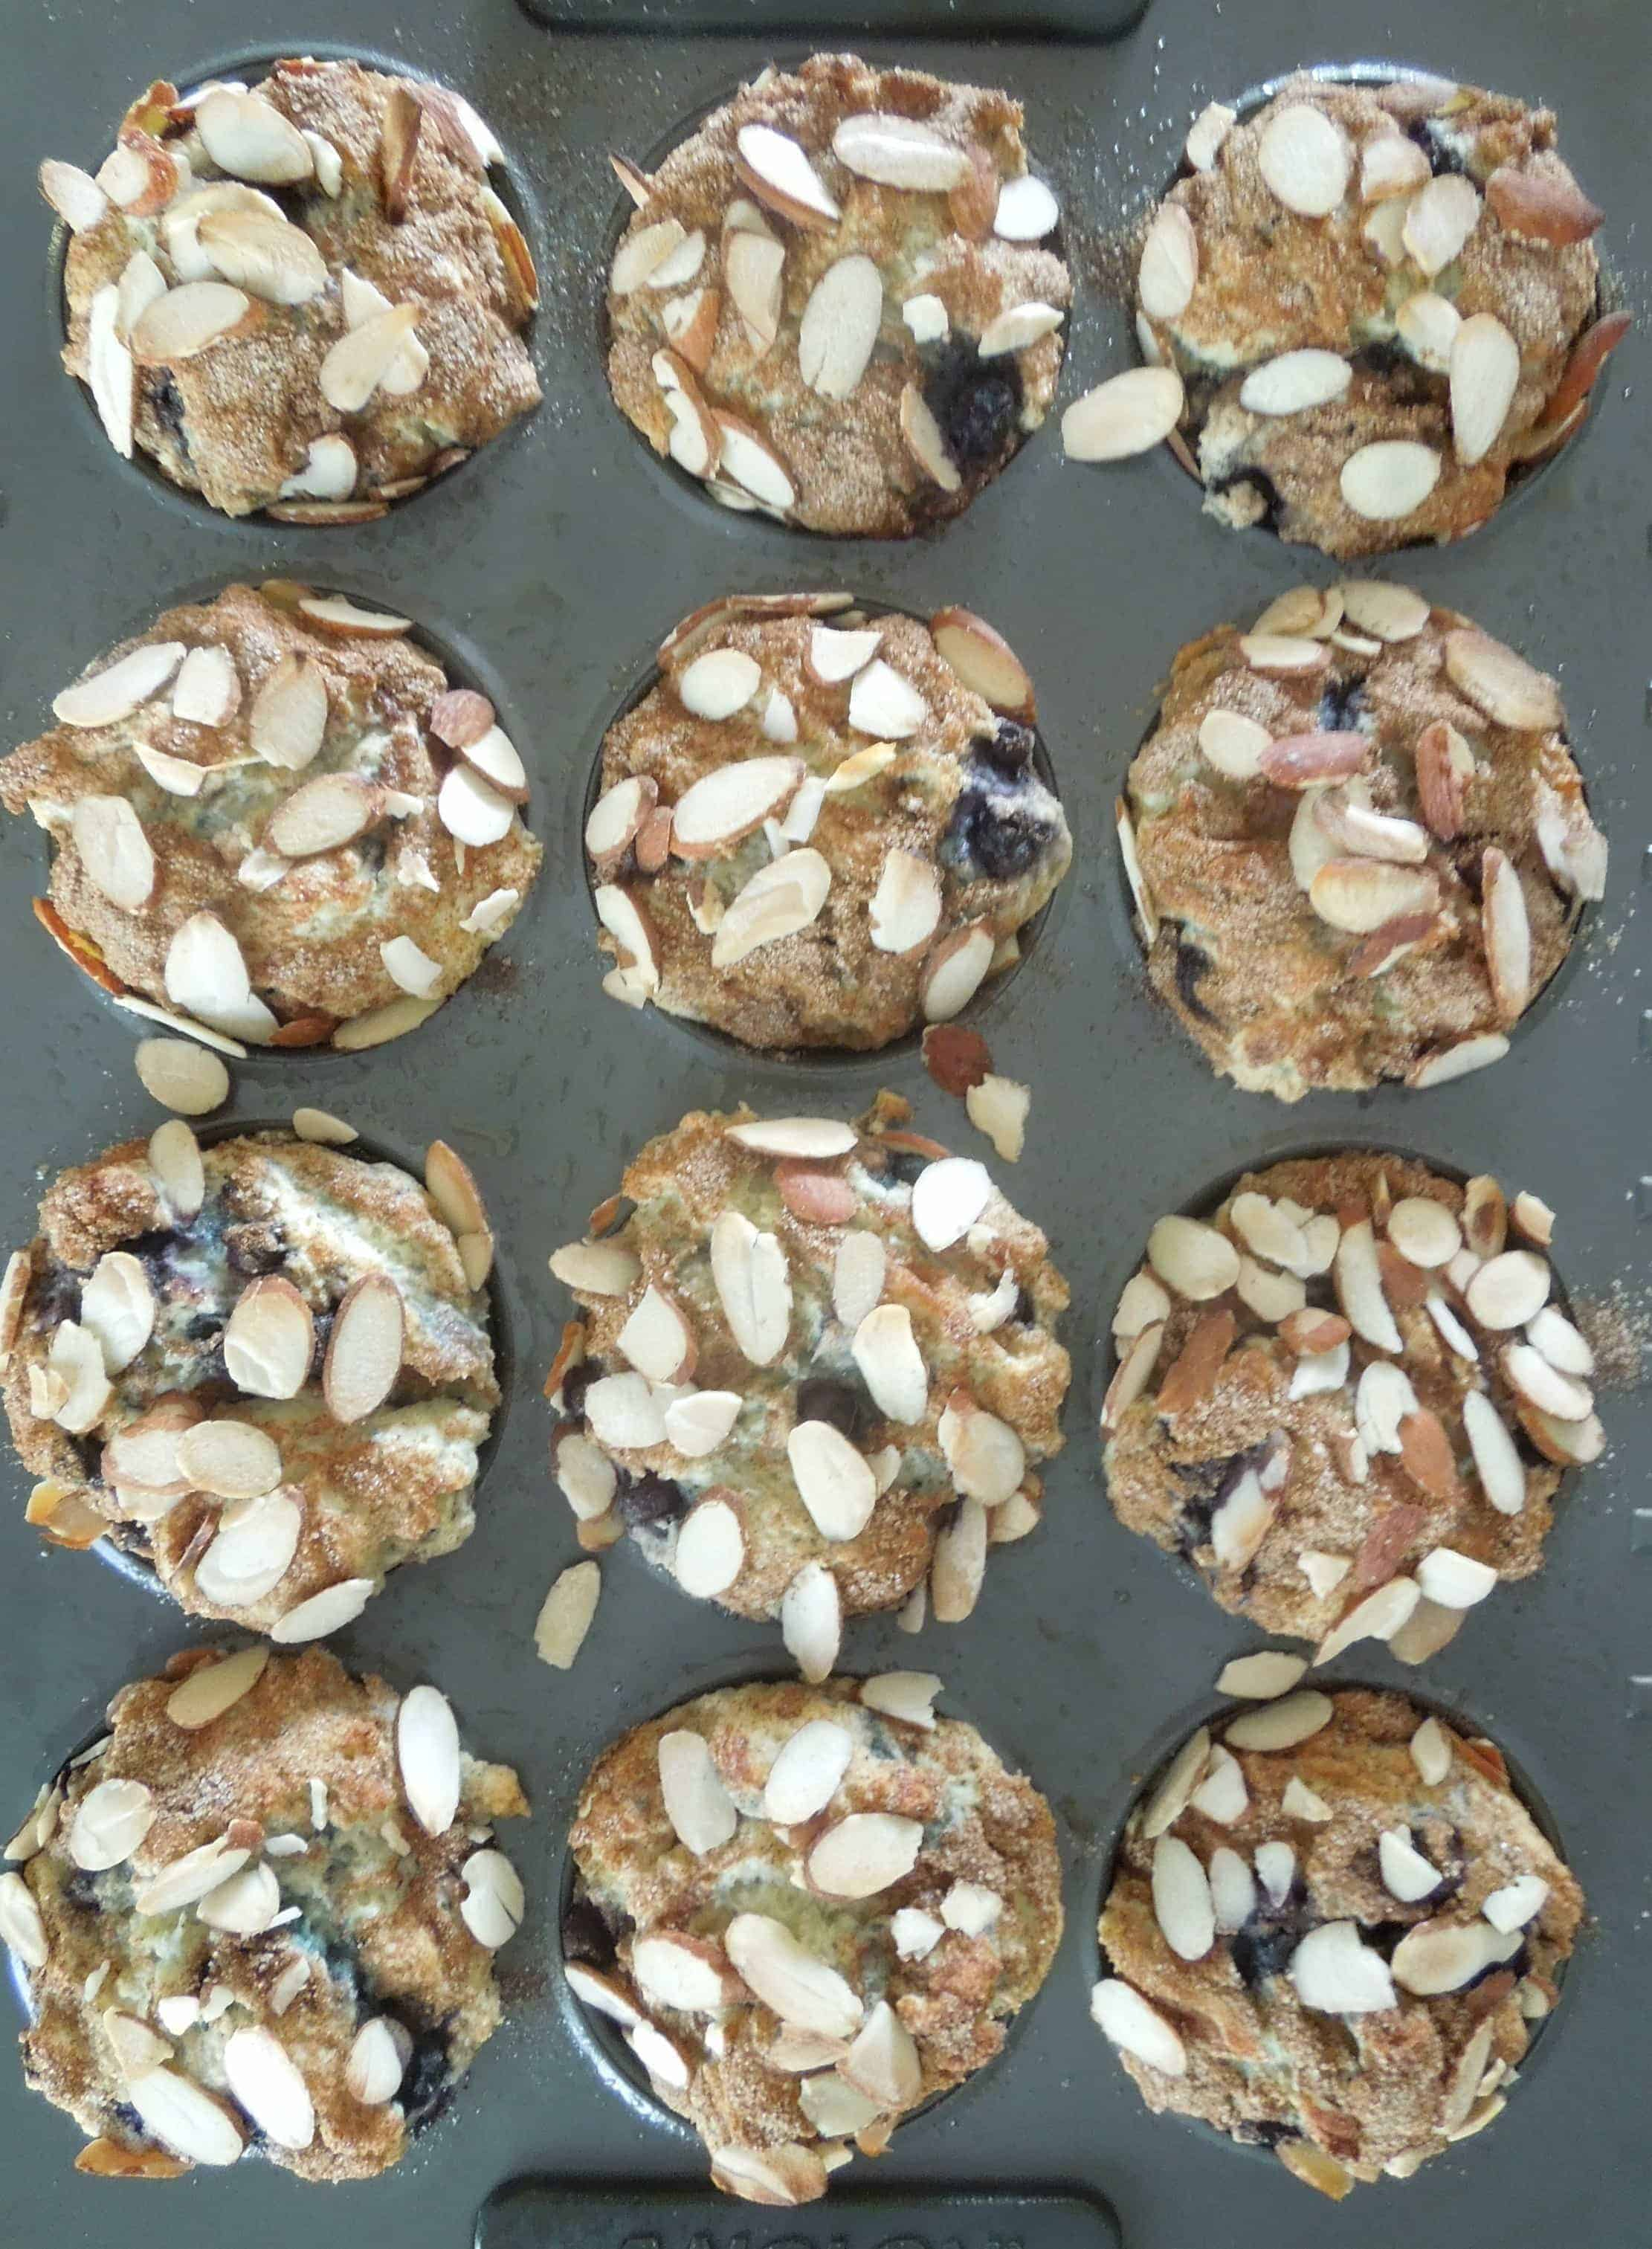 Blueberry Almond Muffins - What the Fork Food Blog